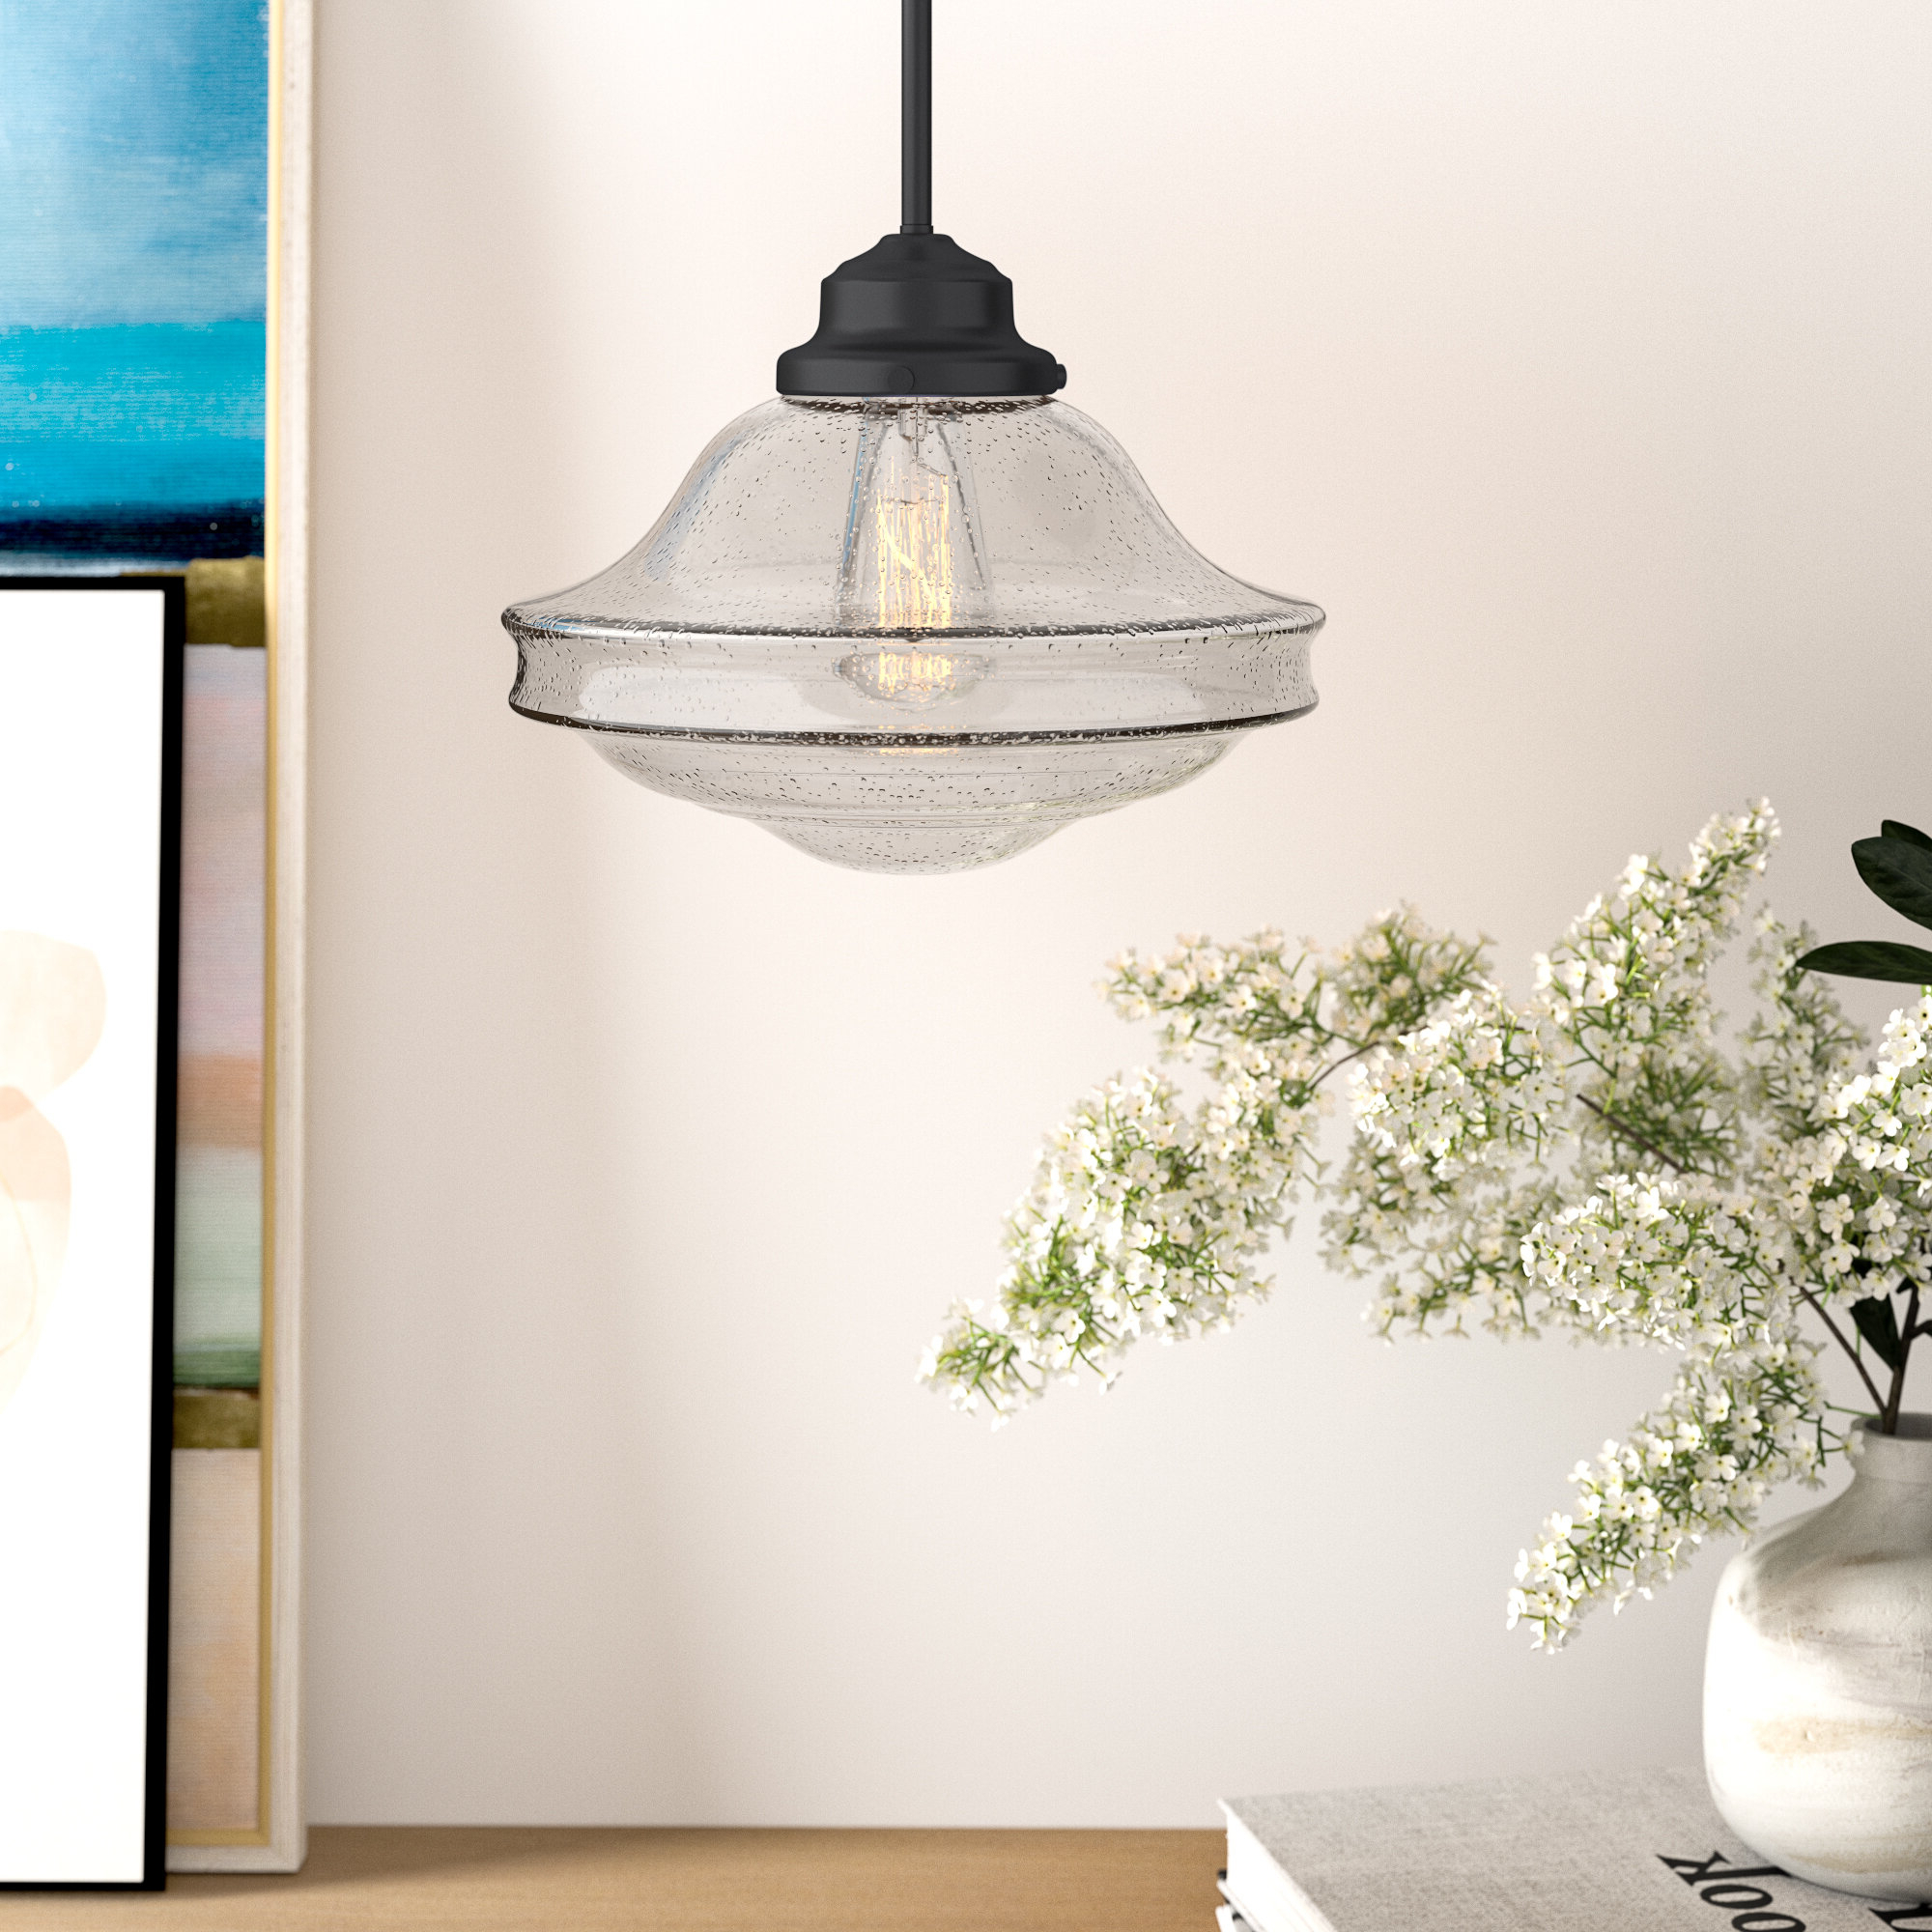 Hirsch 1 Light Single Schoolhouse Pendant For Well Liked Nadine 1 Light Single Schoolhouse Pendants (View 4 of 20)